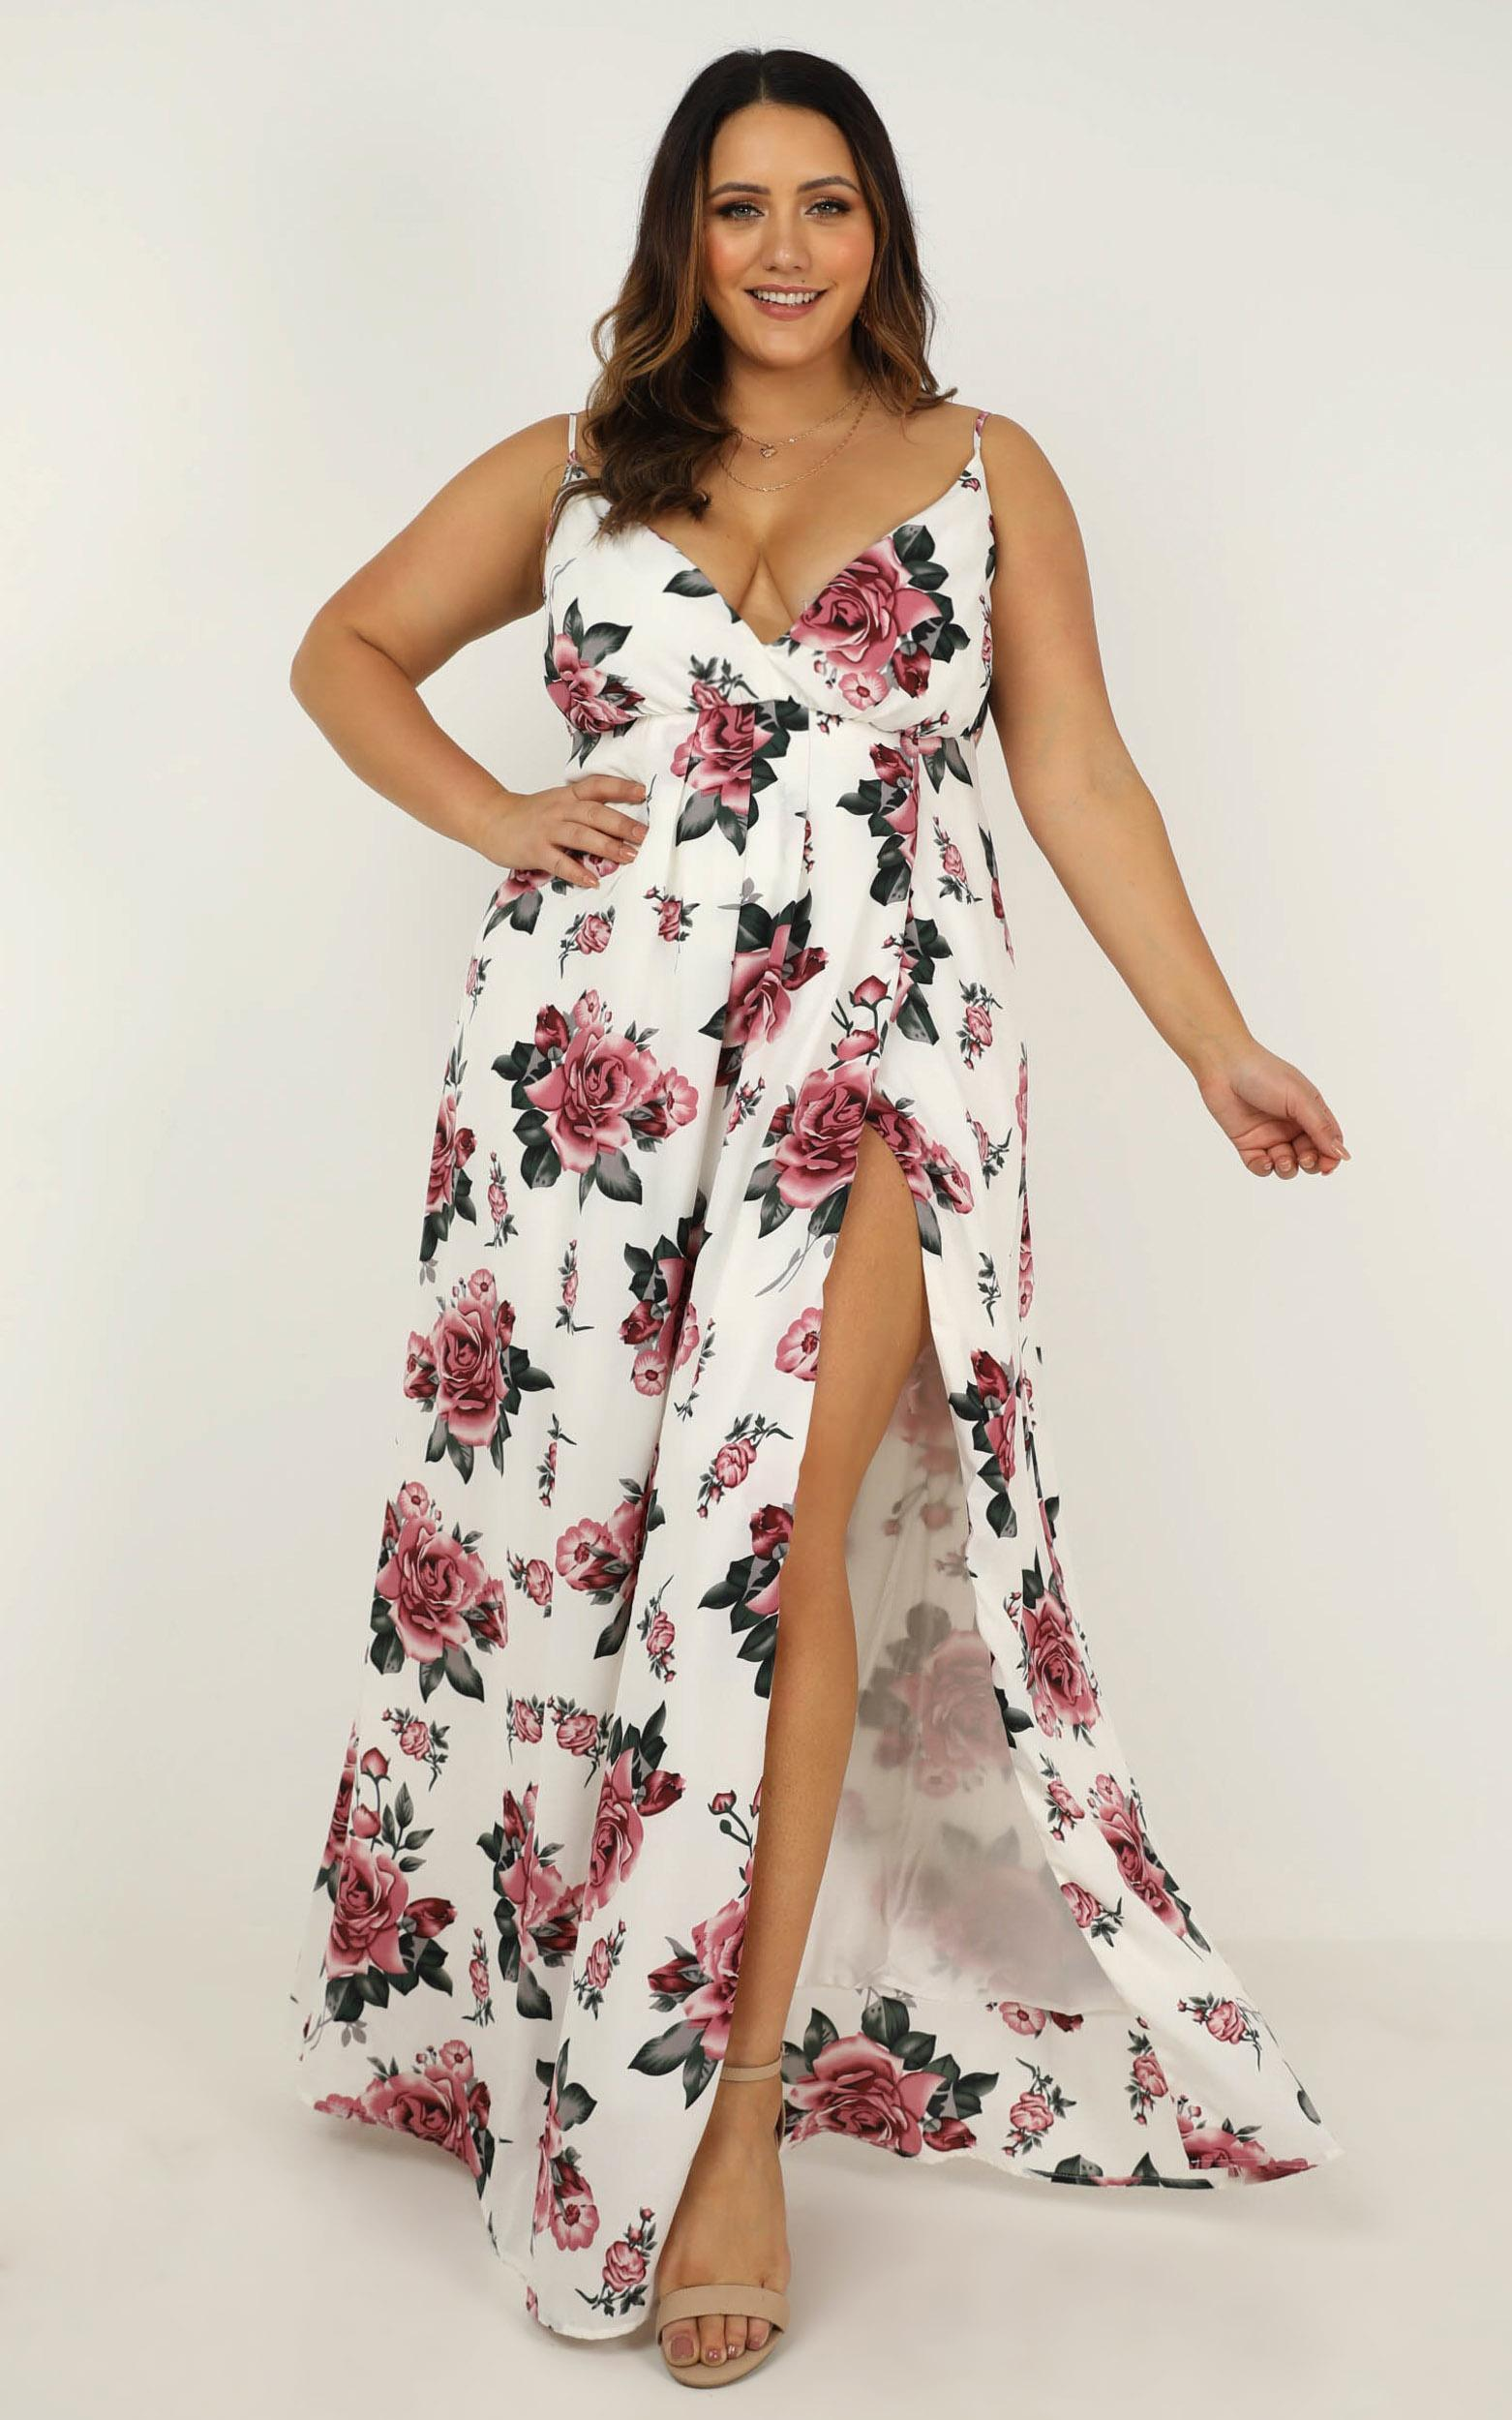 Best Way I Know Dress in white floral - 20 (XXXXL), White, hi-res image number null